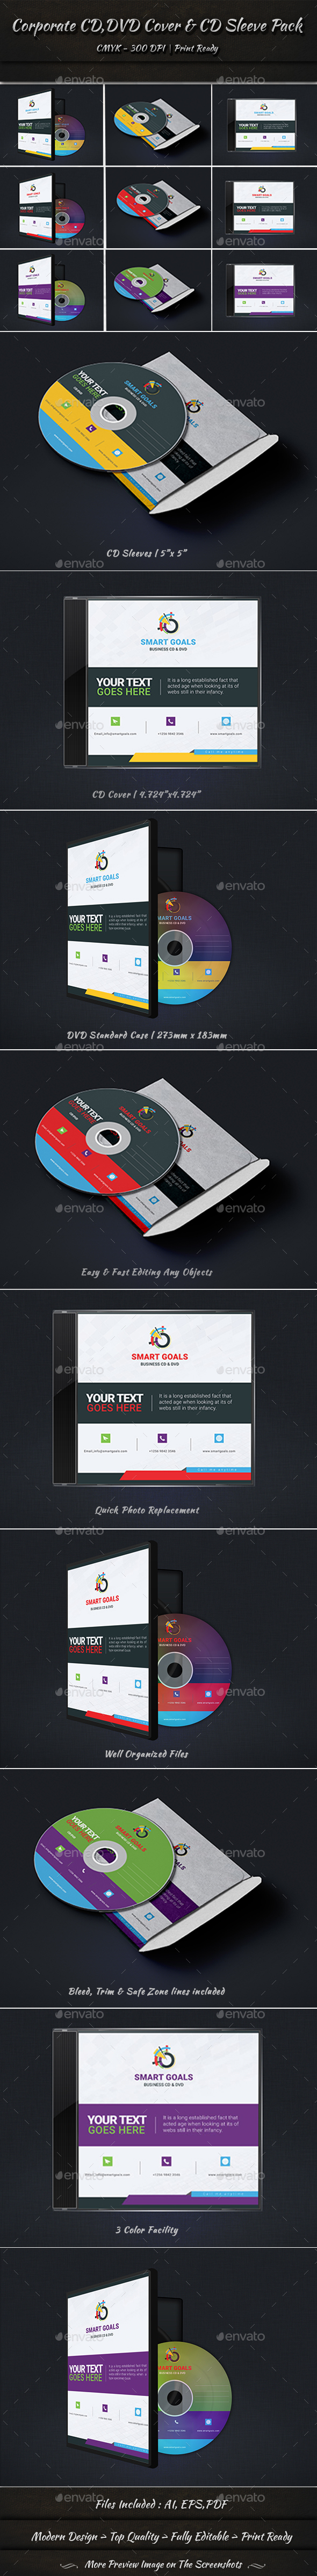 Corporate CD DVD Cover & CD Sleeve Pack - CD & DVD Artwork Print Templates